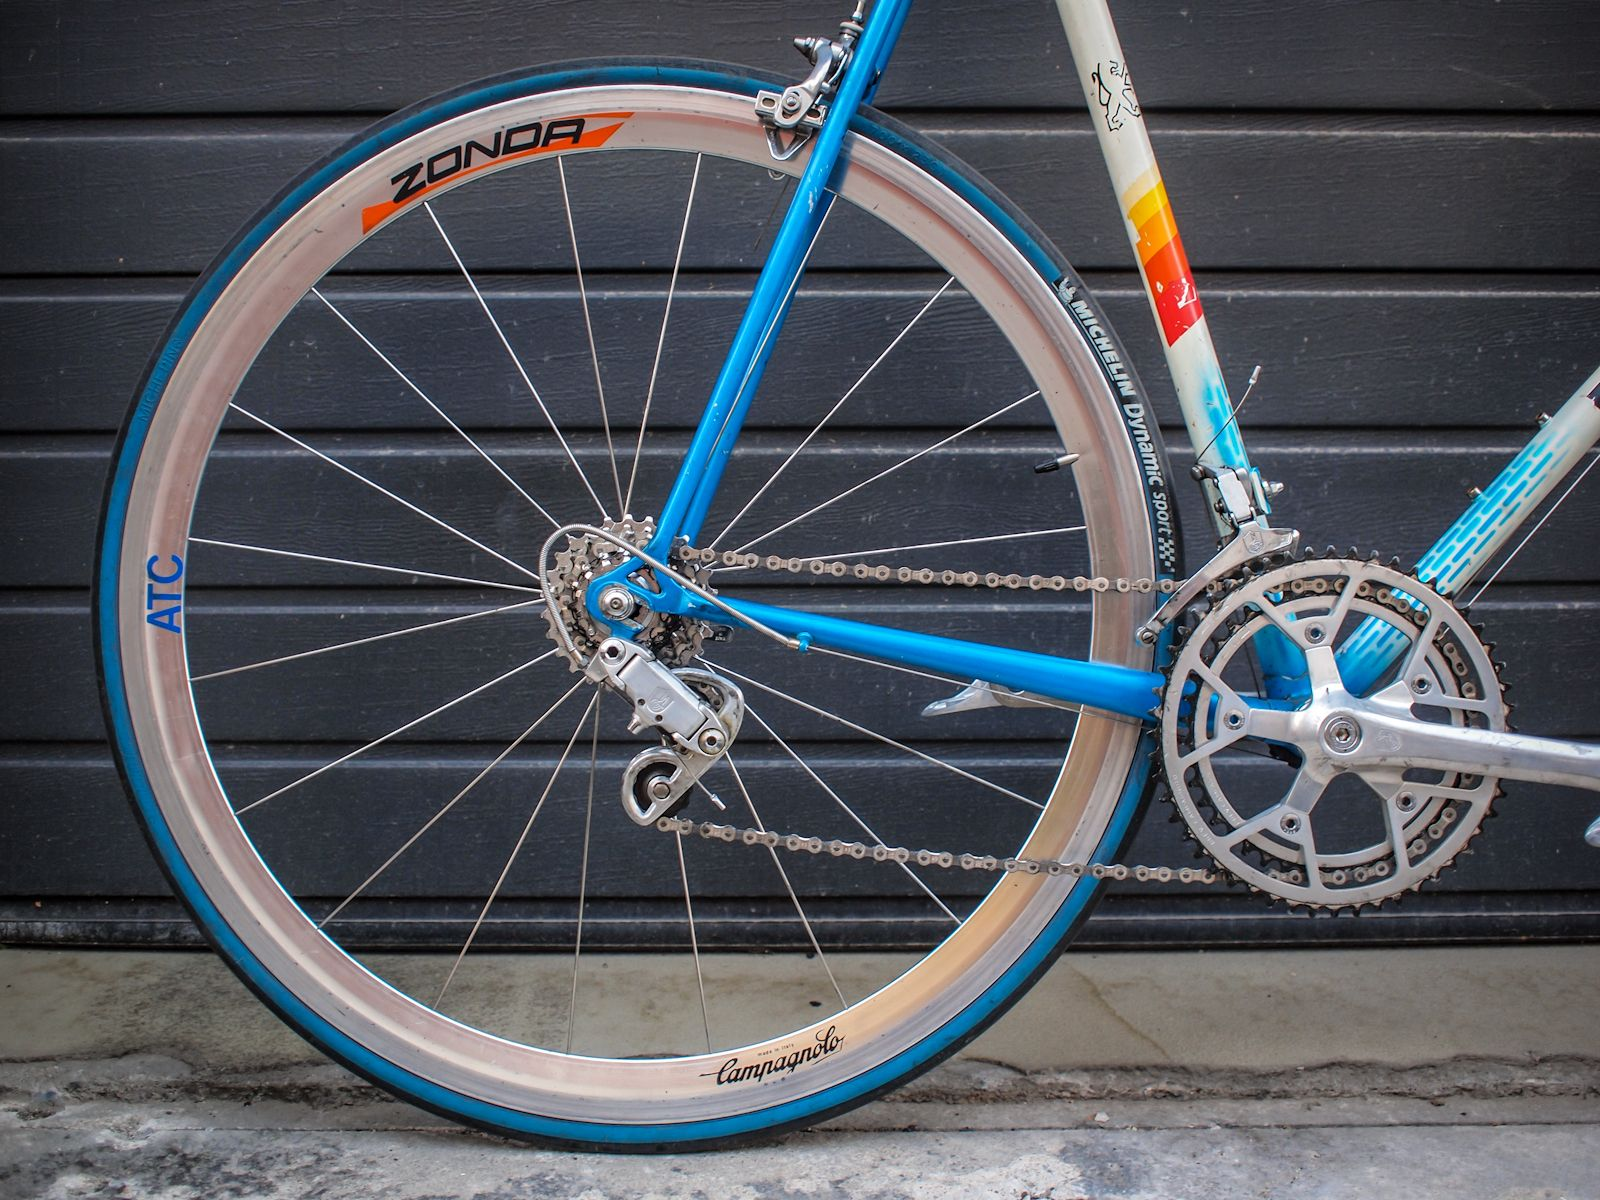 Campagnolo Zonda wheels and Athena brakes on a vintage Peugeot